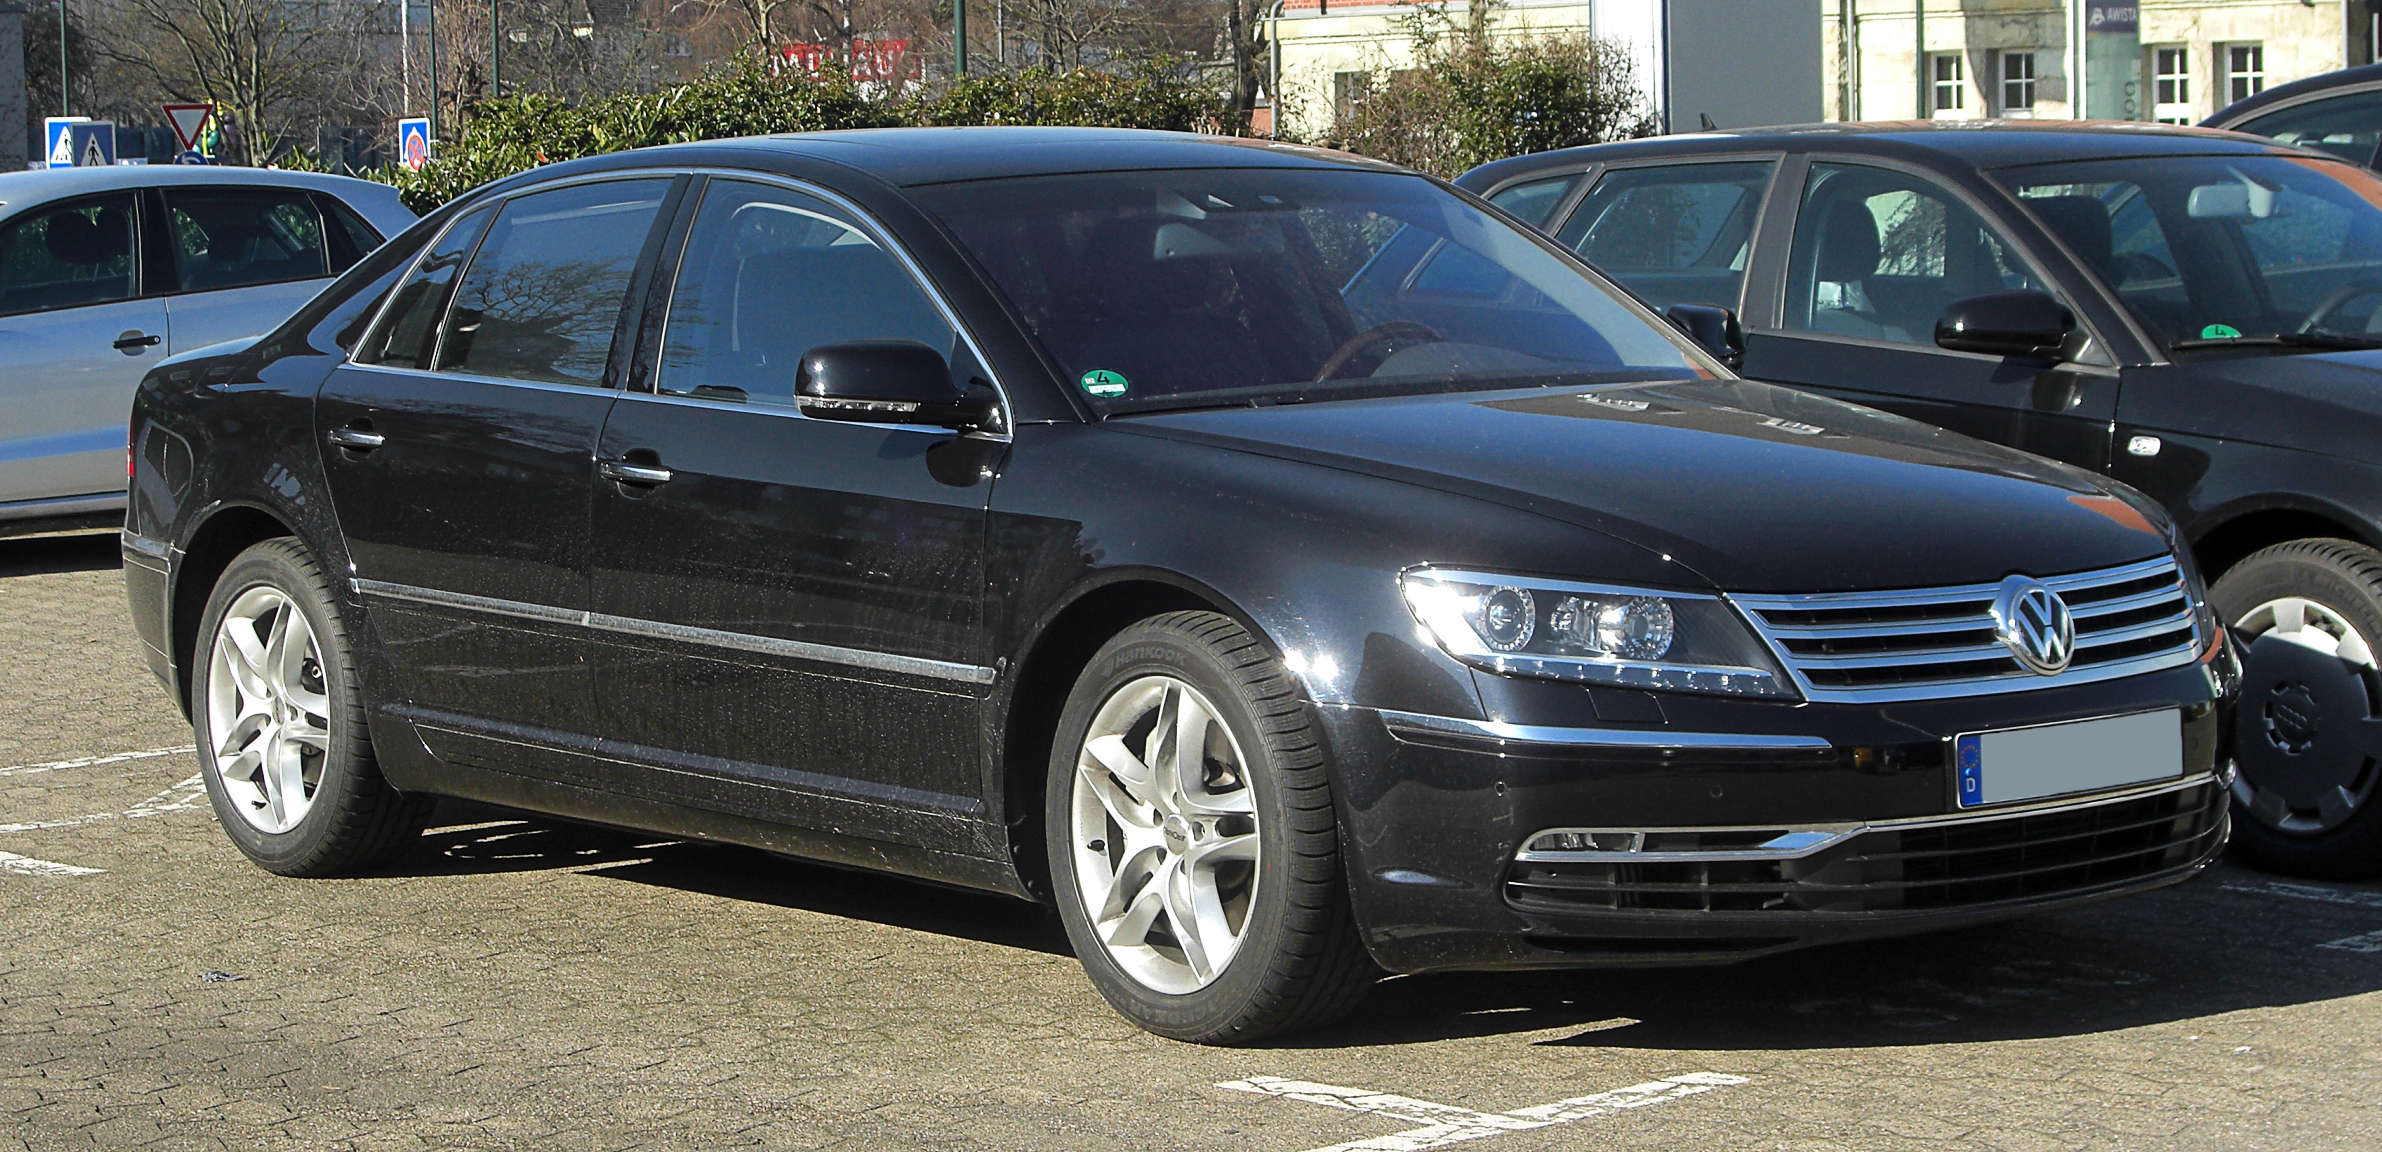 Volkswagen Phaeton 3.0 2011 photo - 3